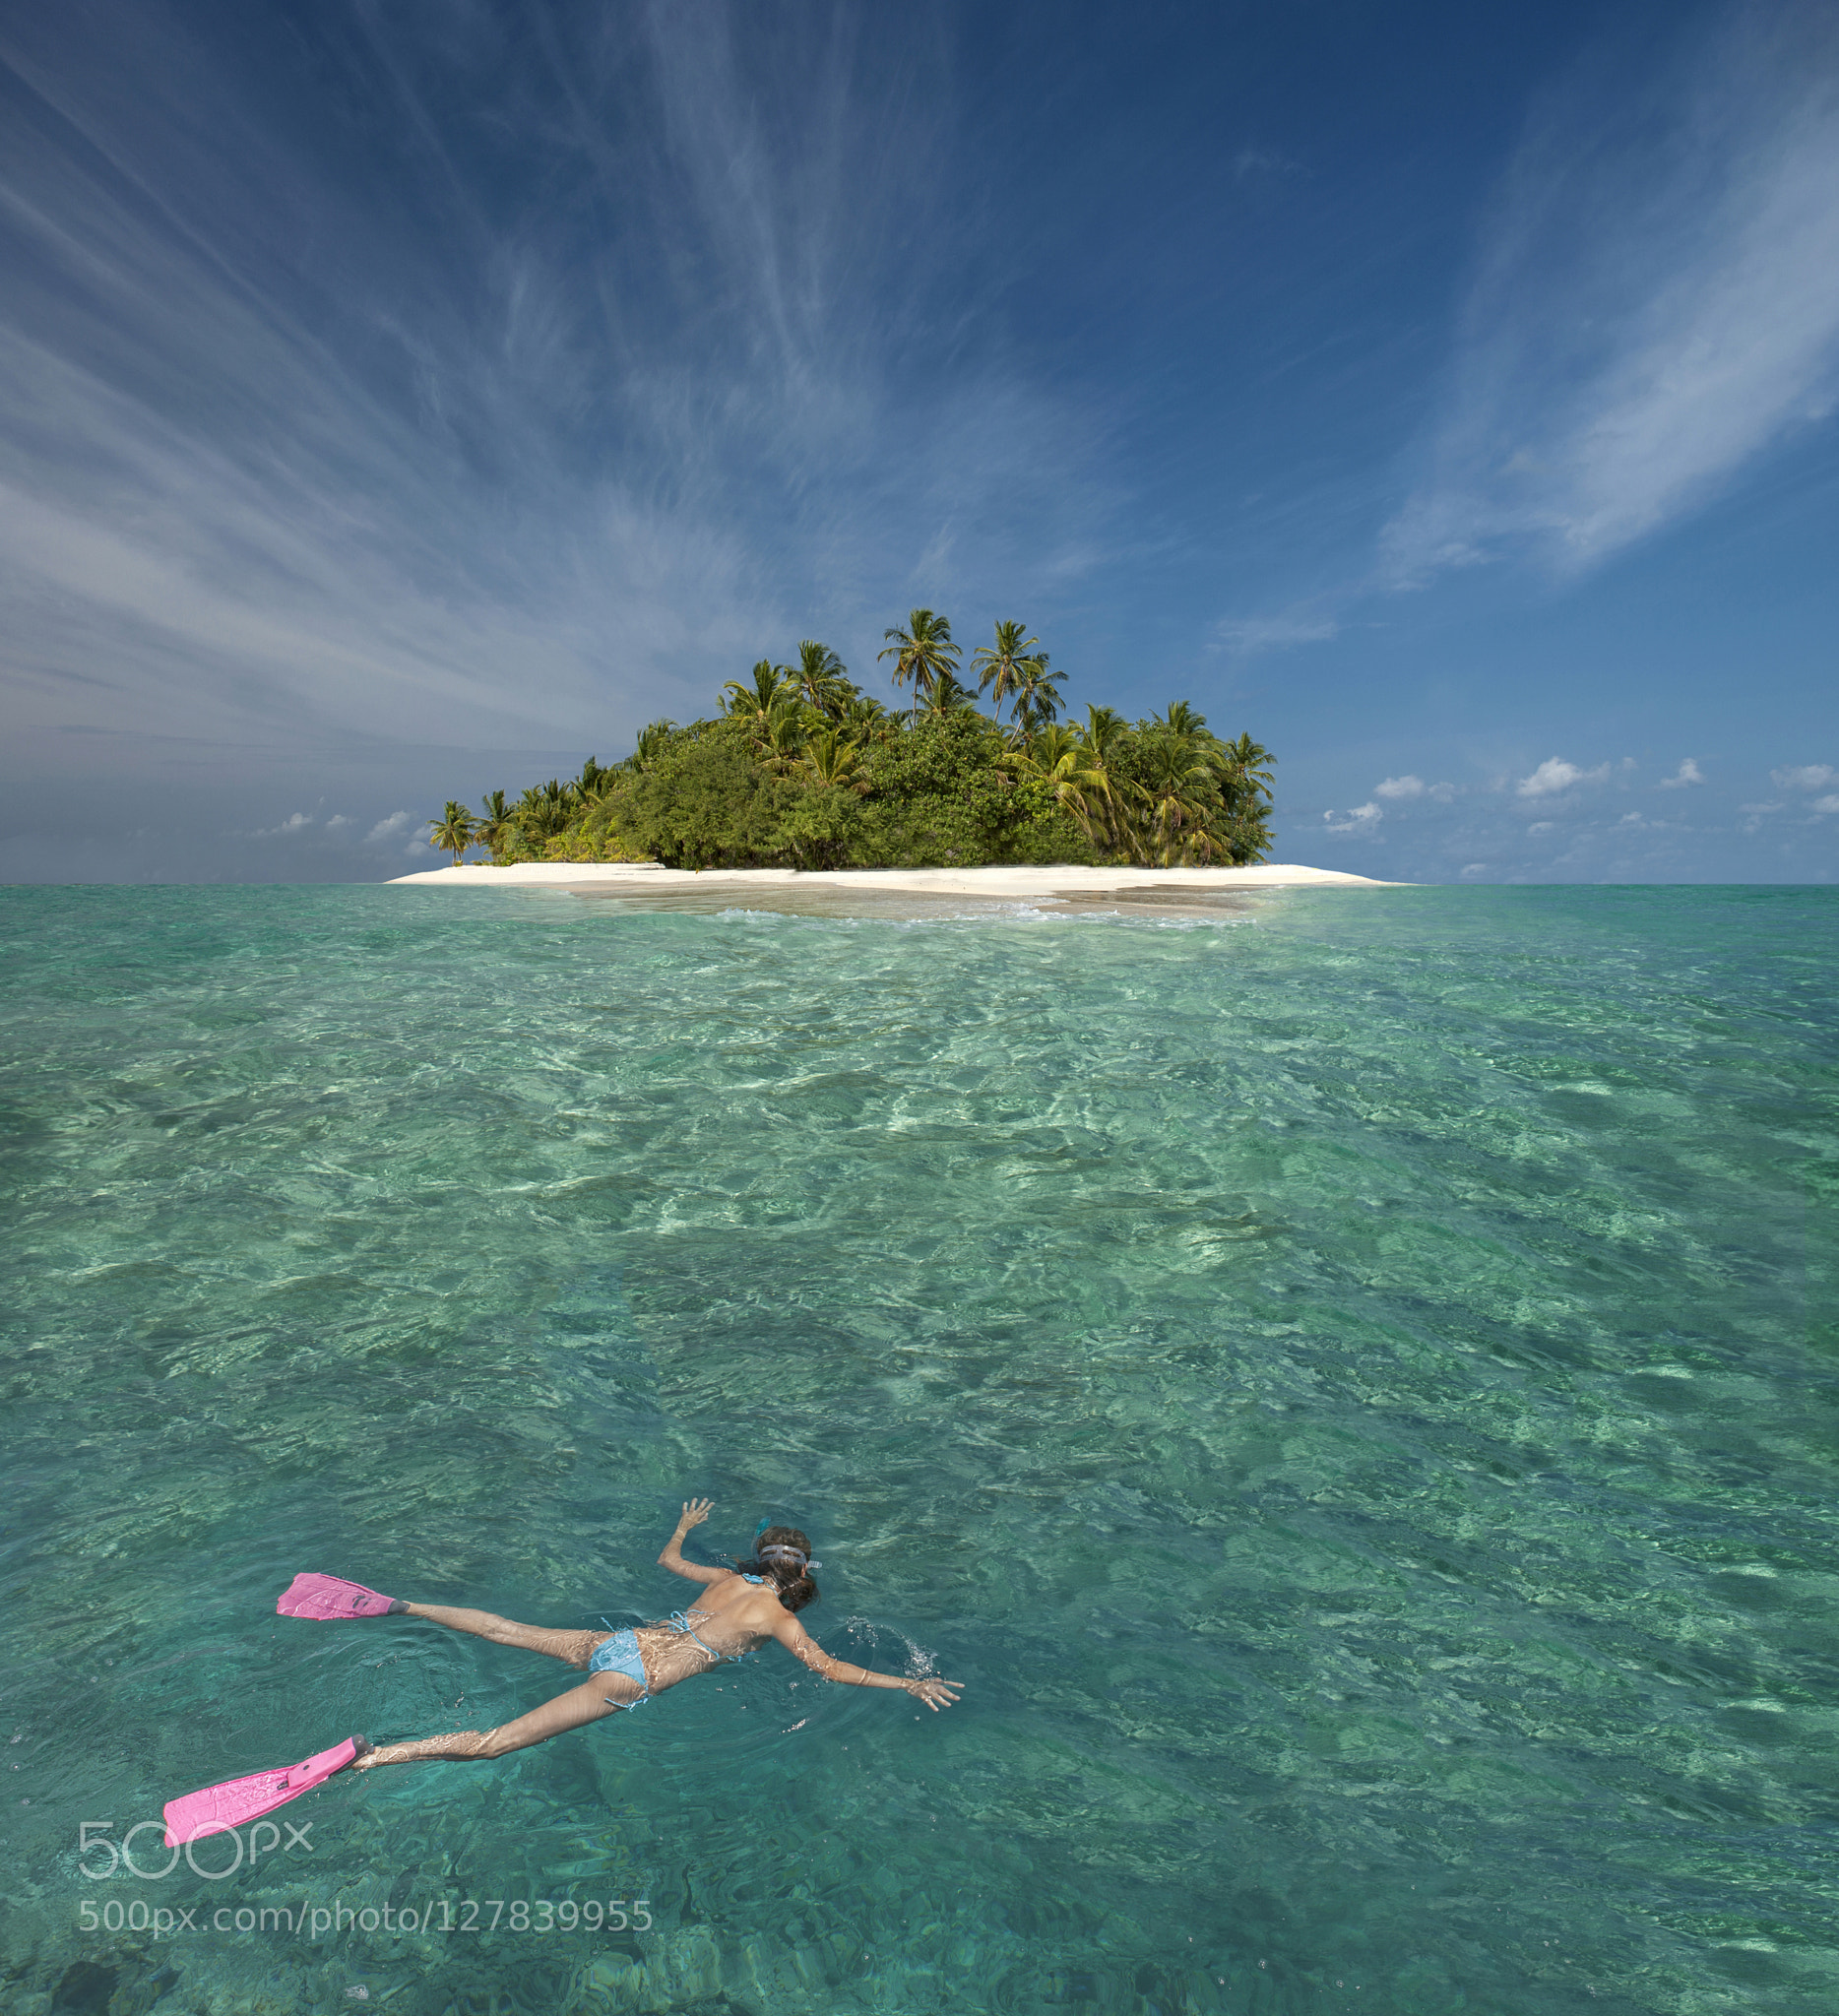 Caucasian woman snorkeling off tropical island